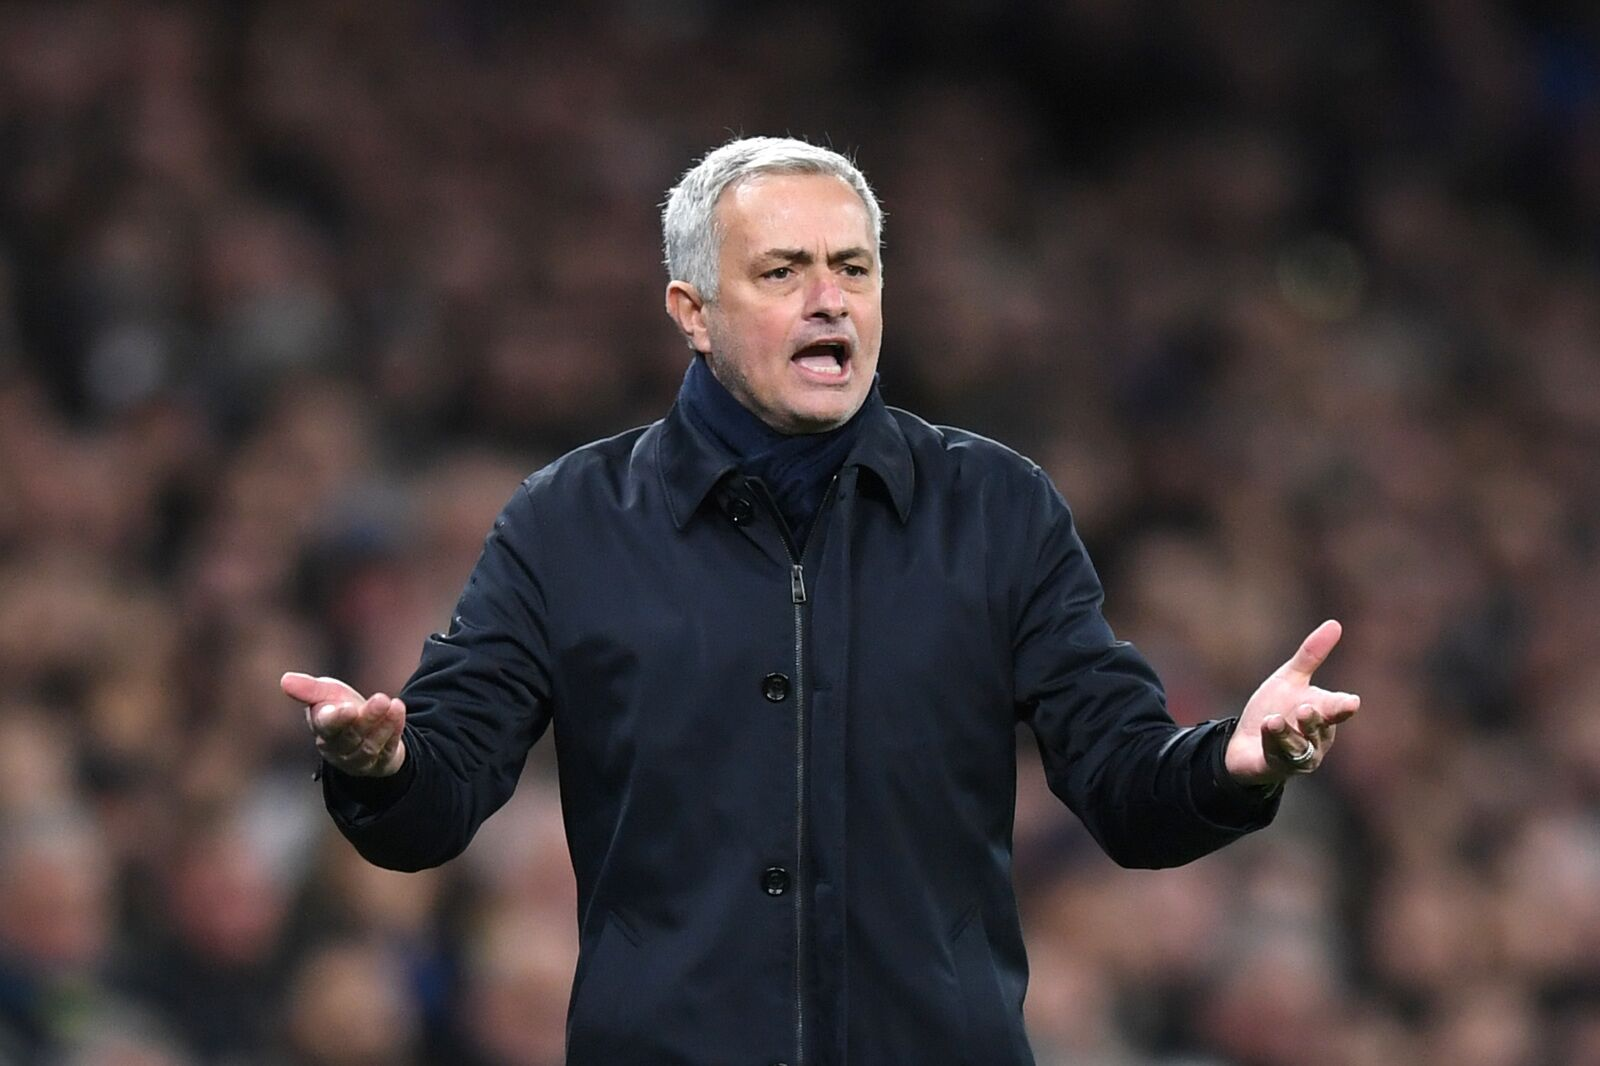 Honeymoon period over for Tottenham under Mourinho, but not all is lost